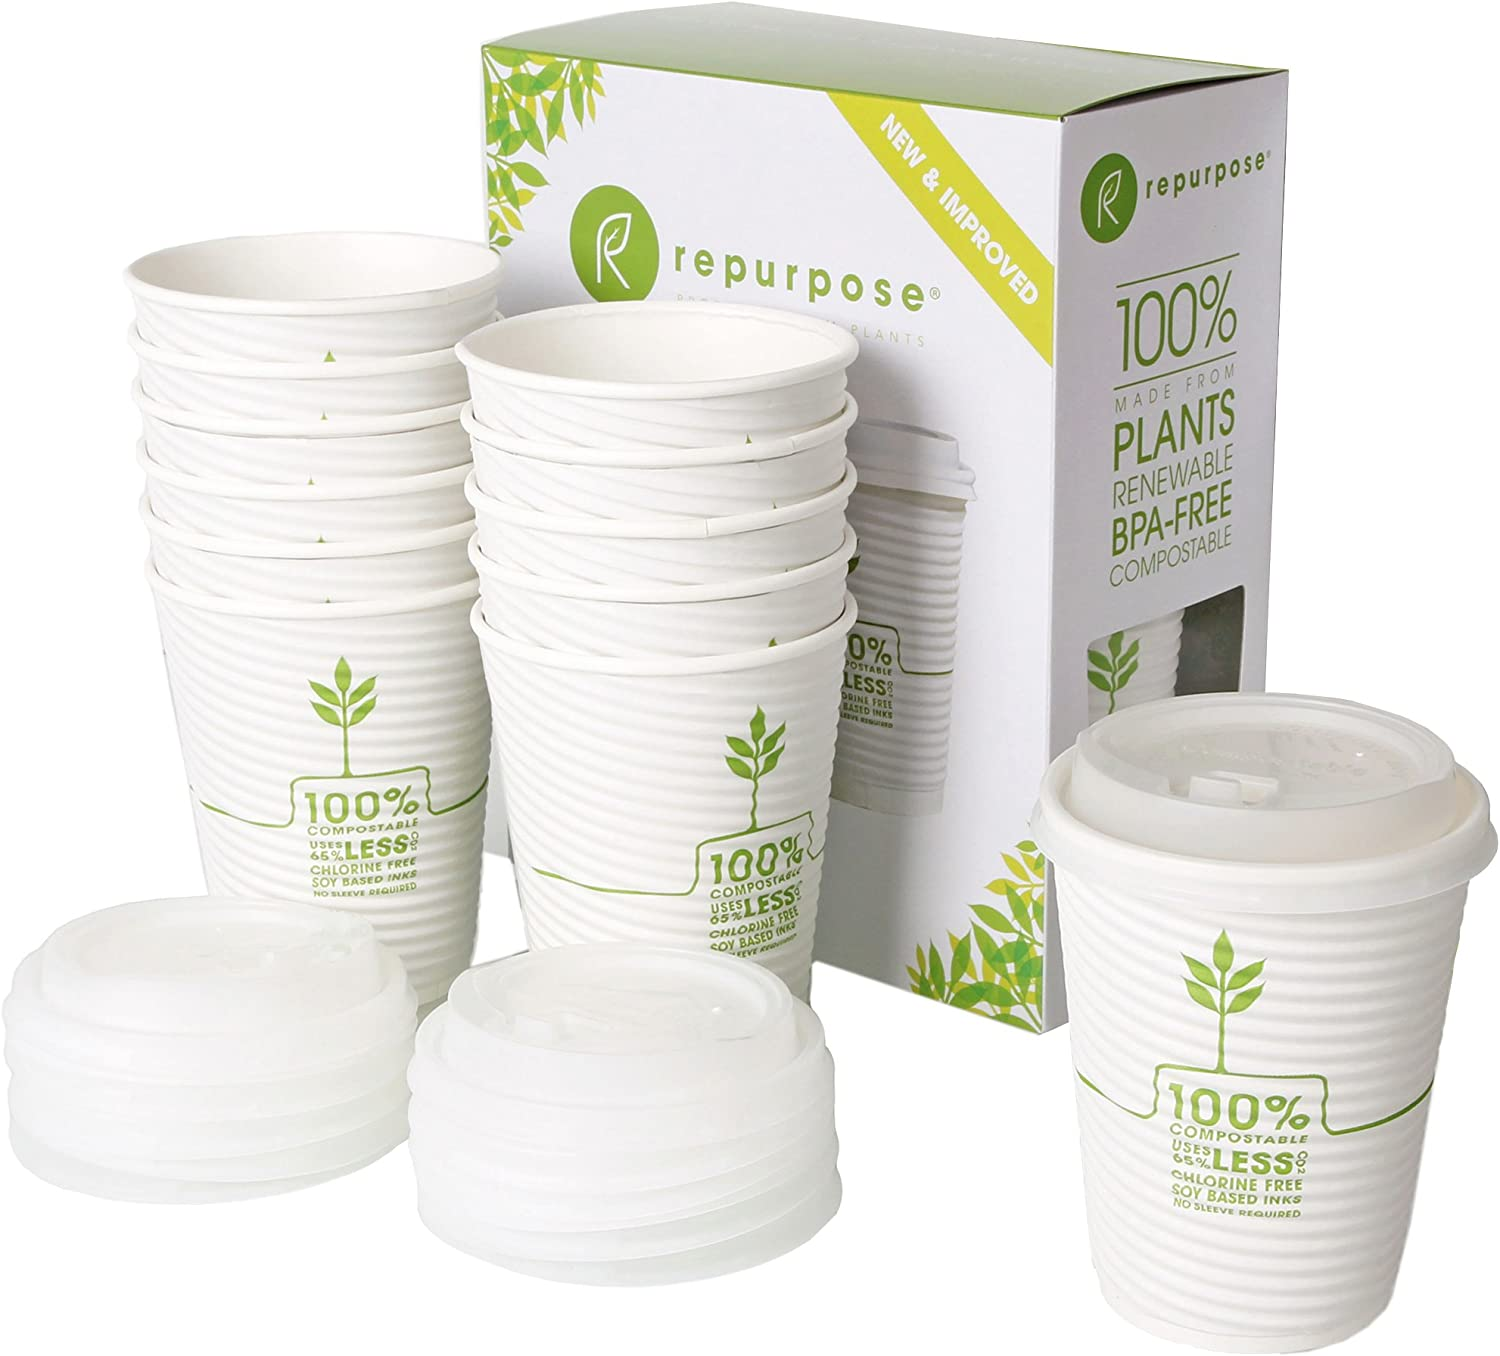 Repurpose 100% Now free shipping Compostable Plant Based Spring new work Cups 1 Lids with Coffee